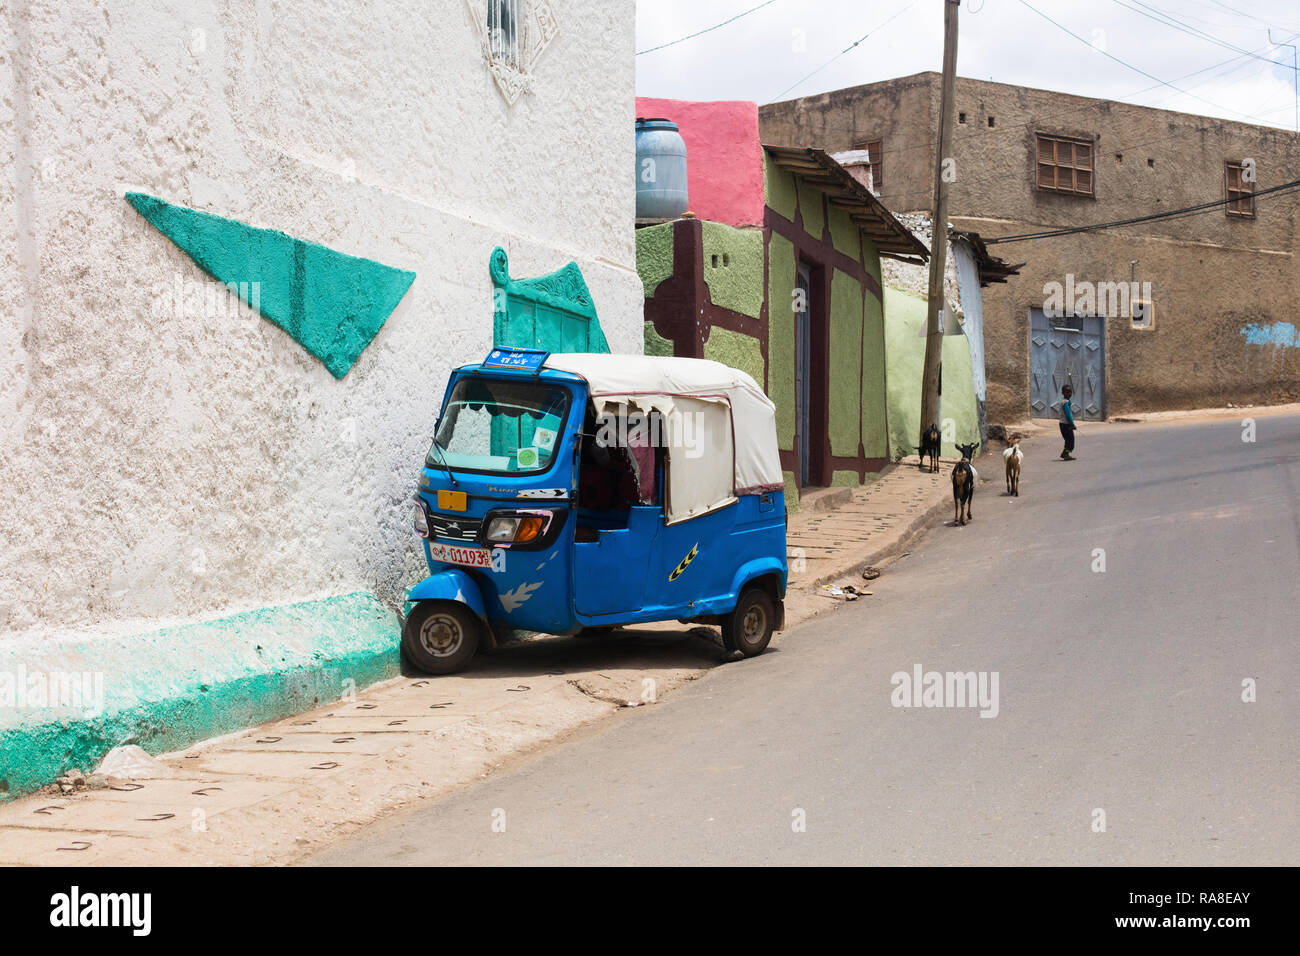 Harar / Ethiopia - May 04 2017: A riksha being parked in a street of Harar, Ethiopia. Stock Photo